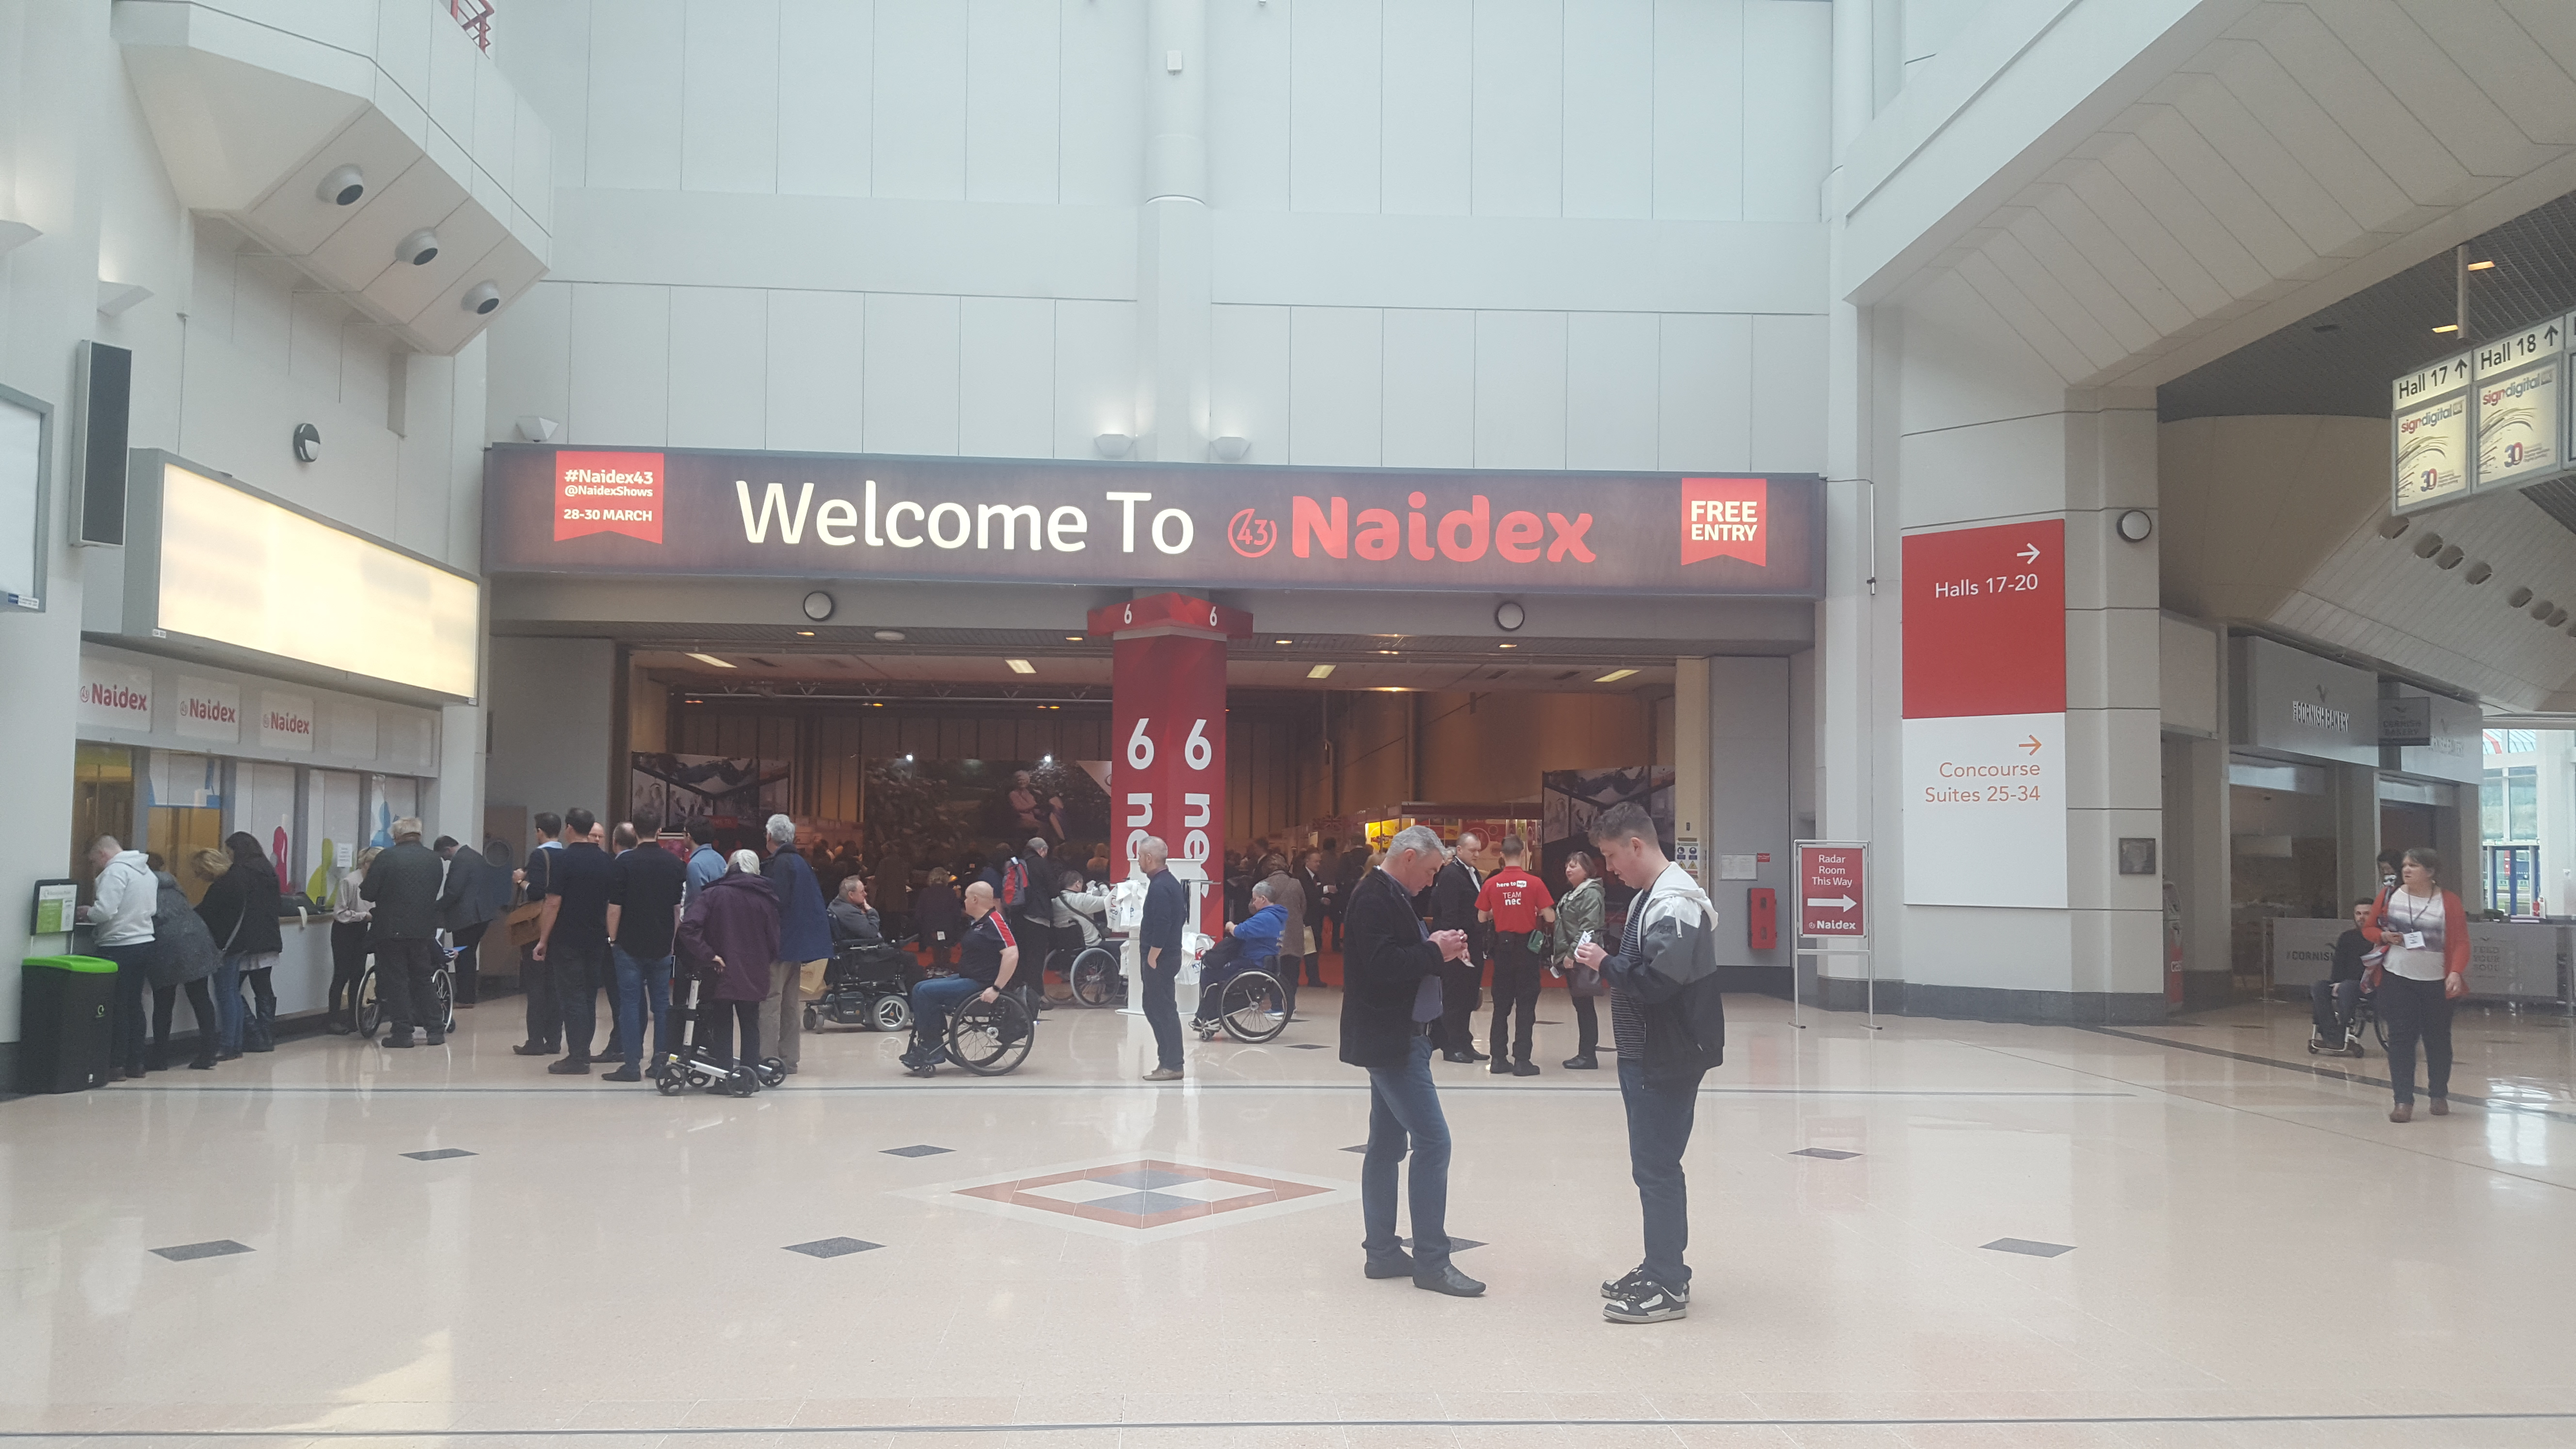 Naidex show at the NEC